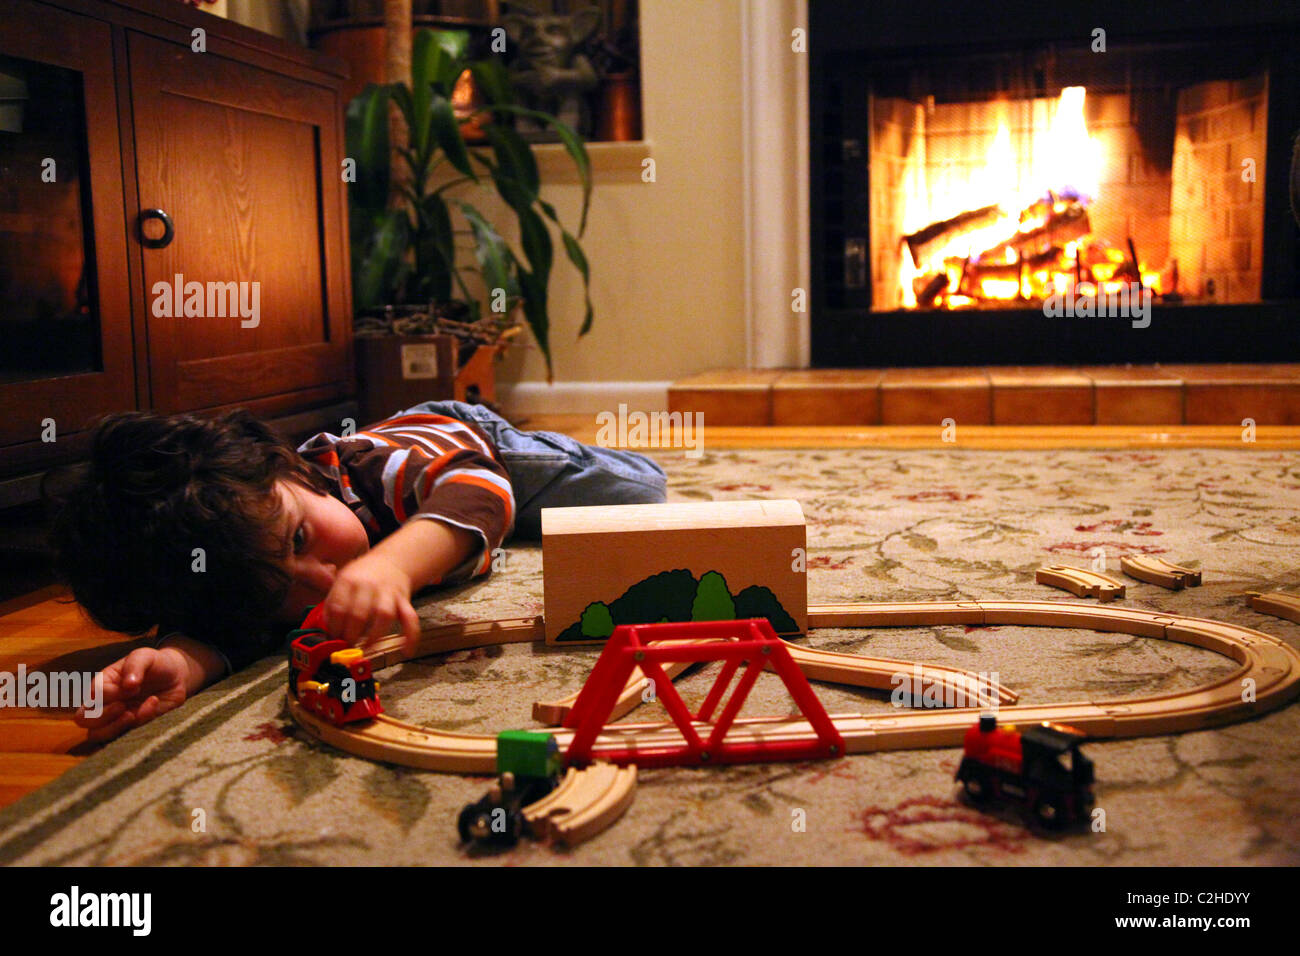 Young boy playing with toy trains Photo Stock